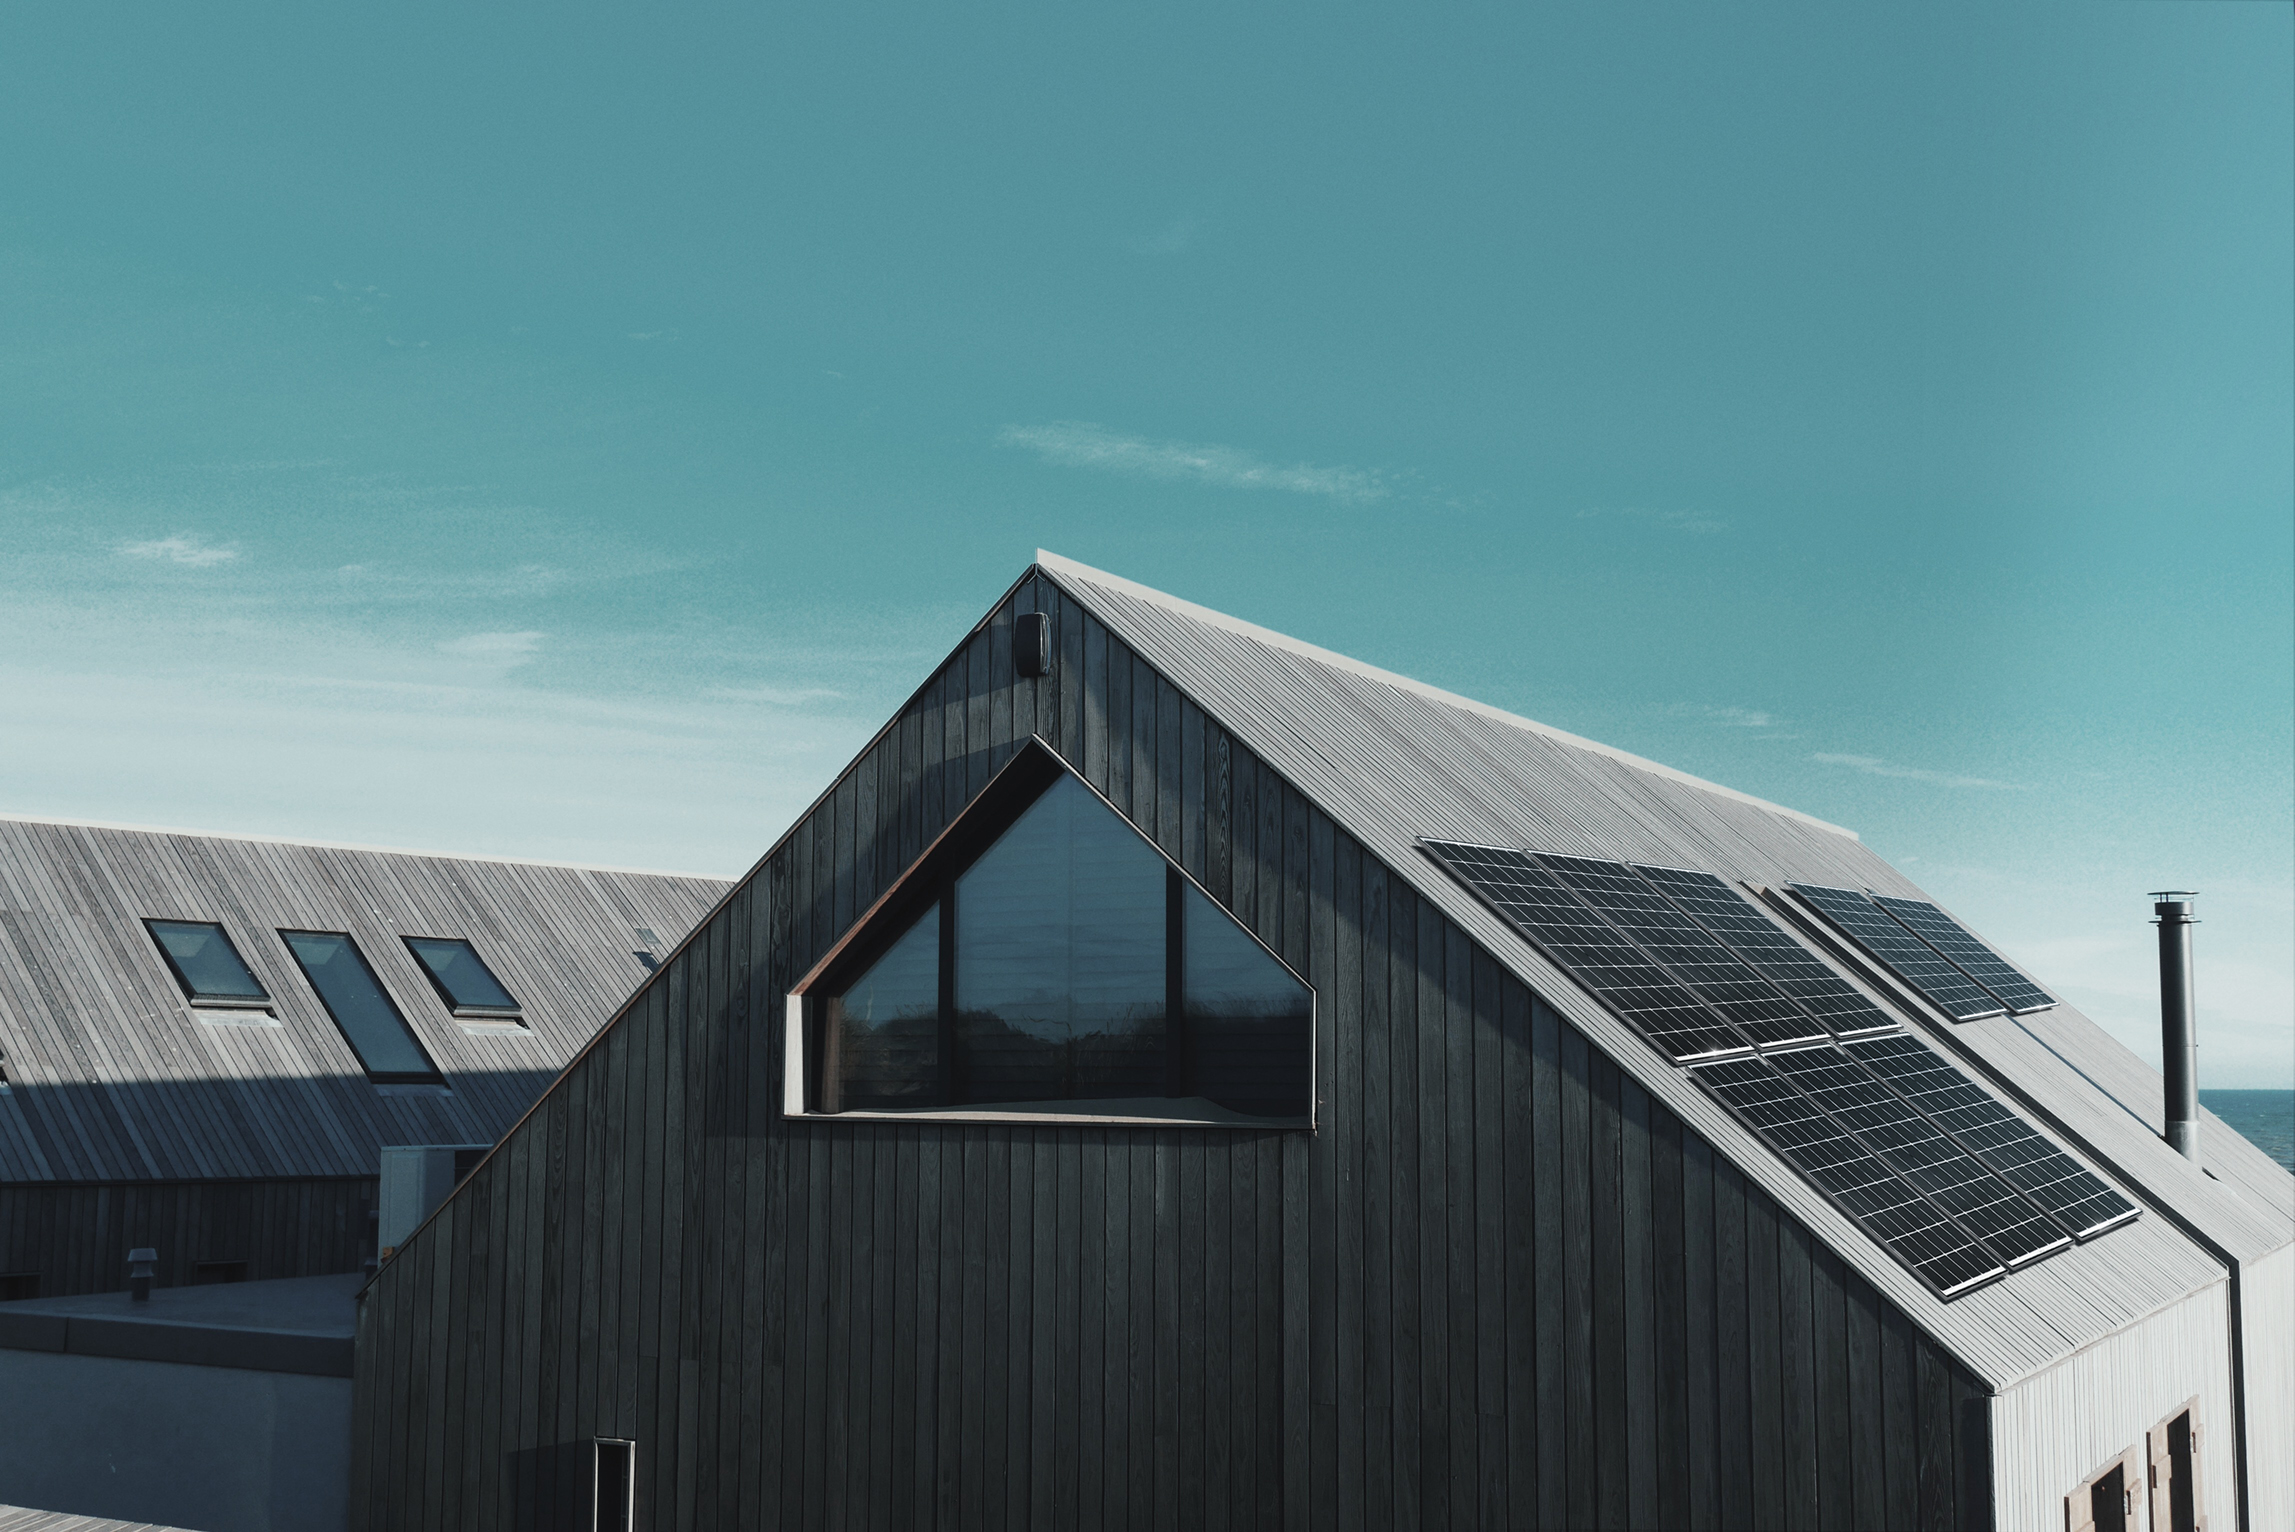 We make solar design and installation simple. -